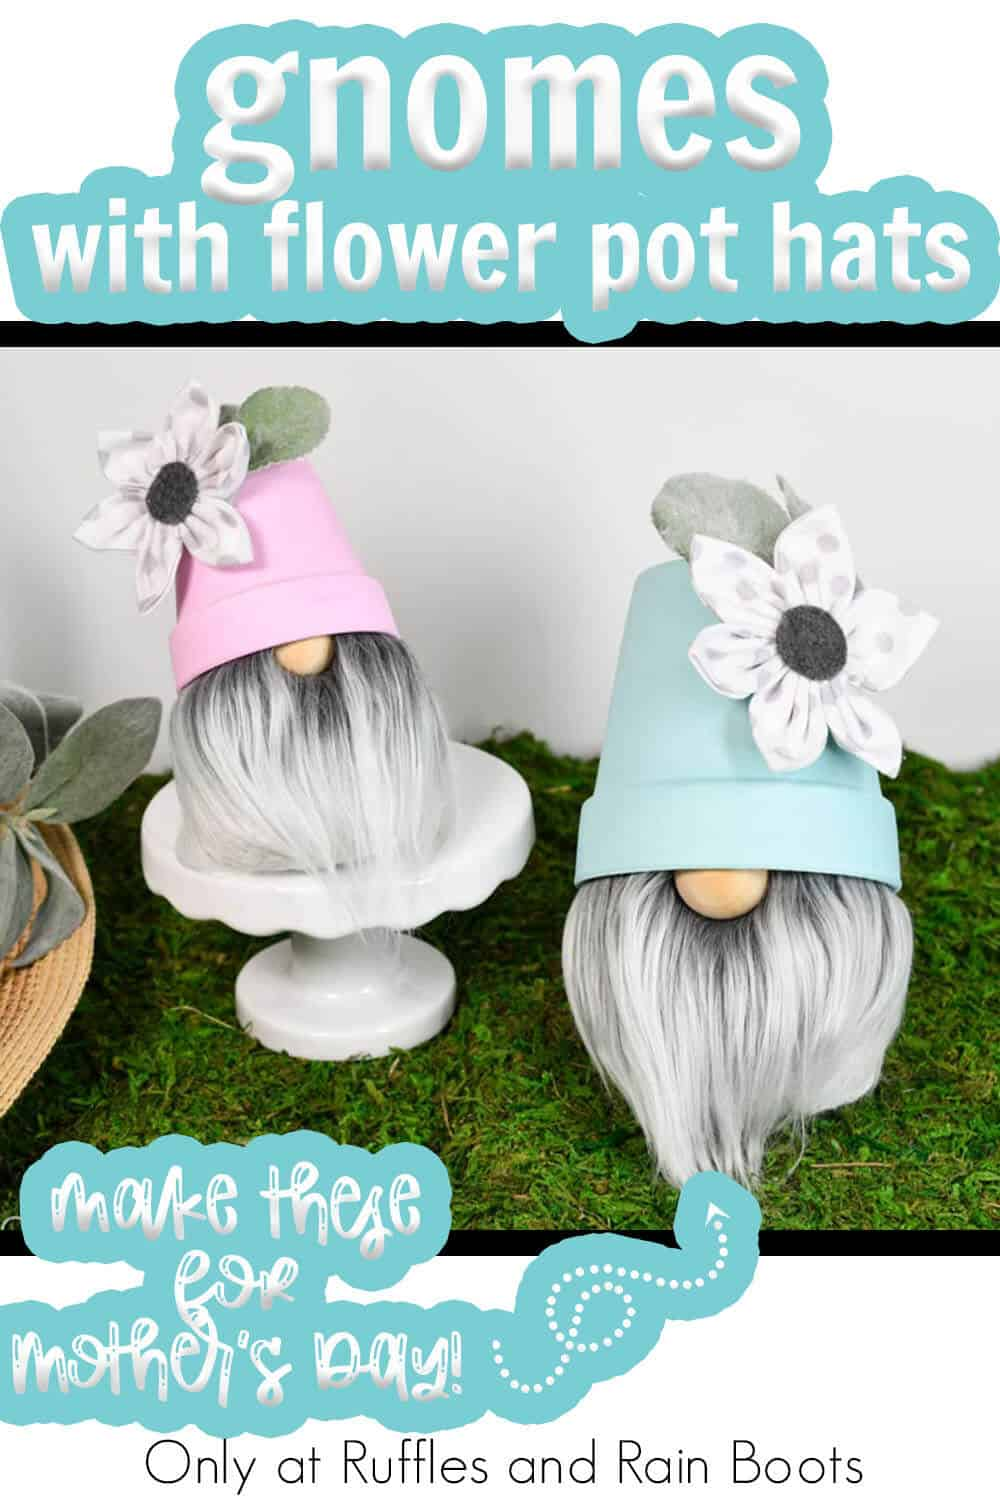 flower pot hat sock gnome diy for mothers day with text which reads gnomes with flower pot hats make these for mothers day